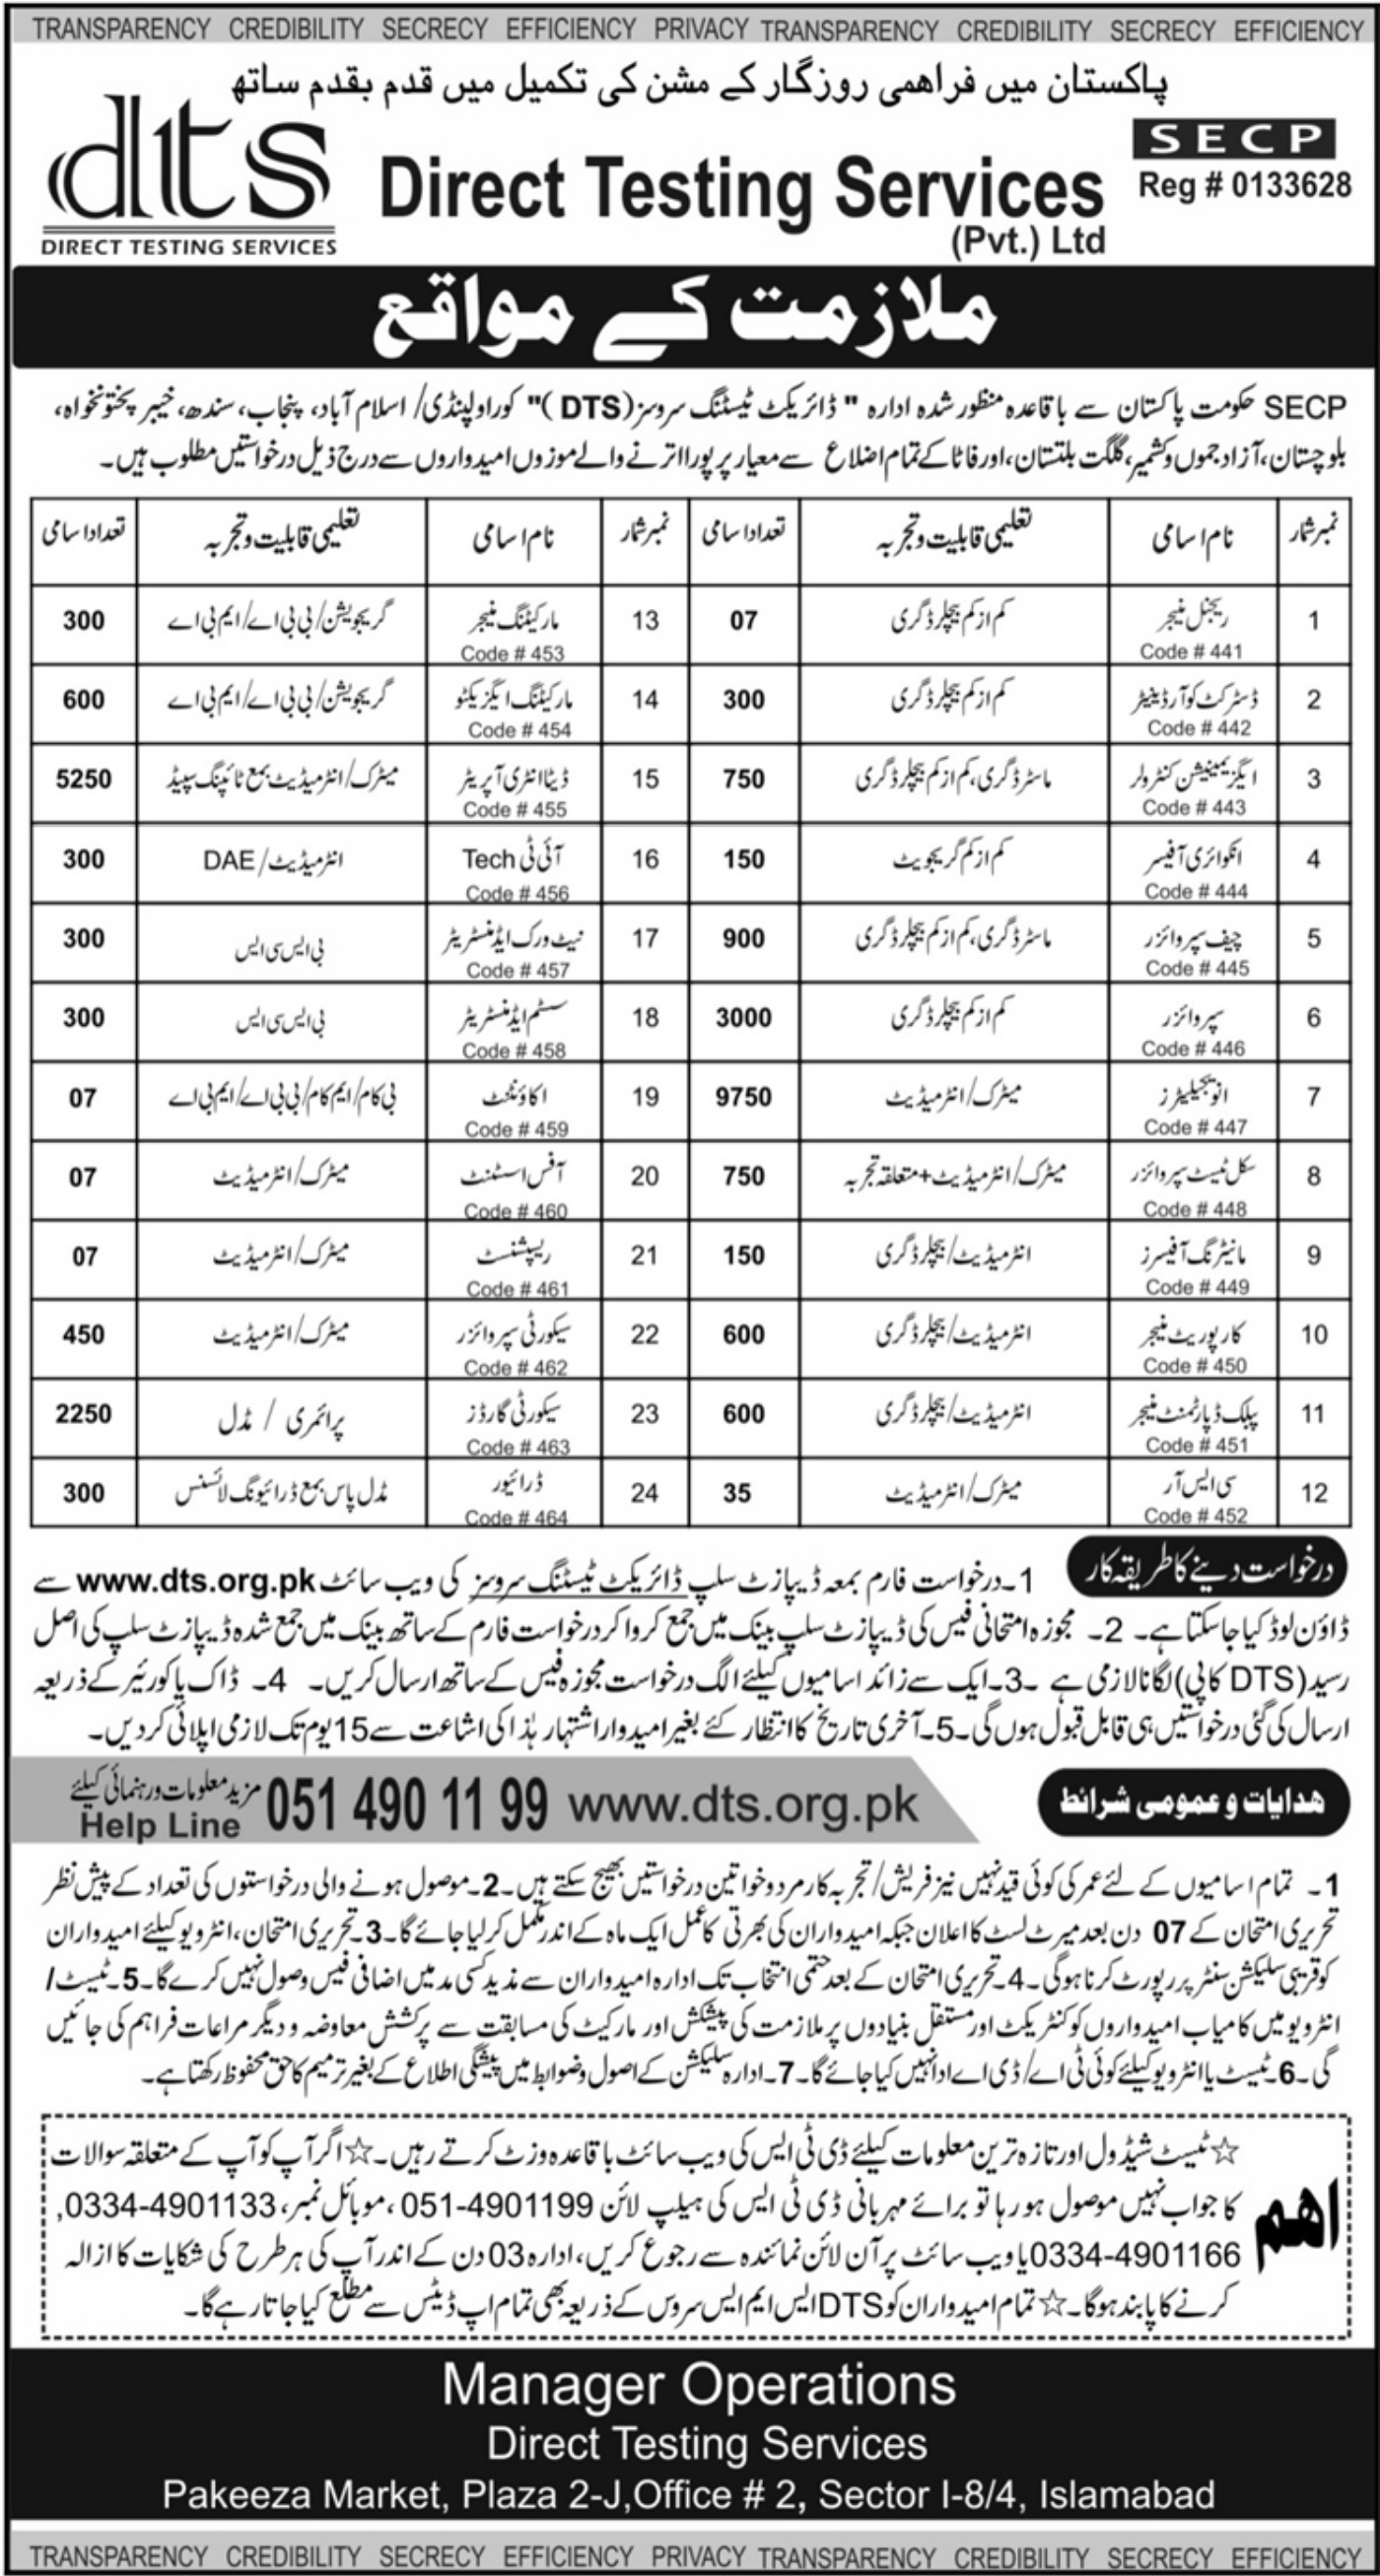 Direct Testing Services Pvt Ltd Jobs 2019 DTS Application Form Download